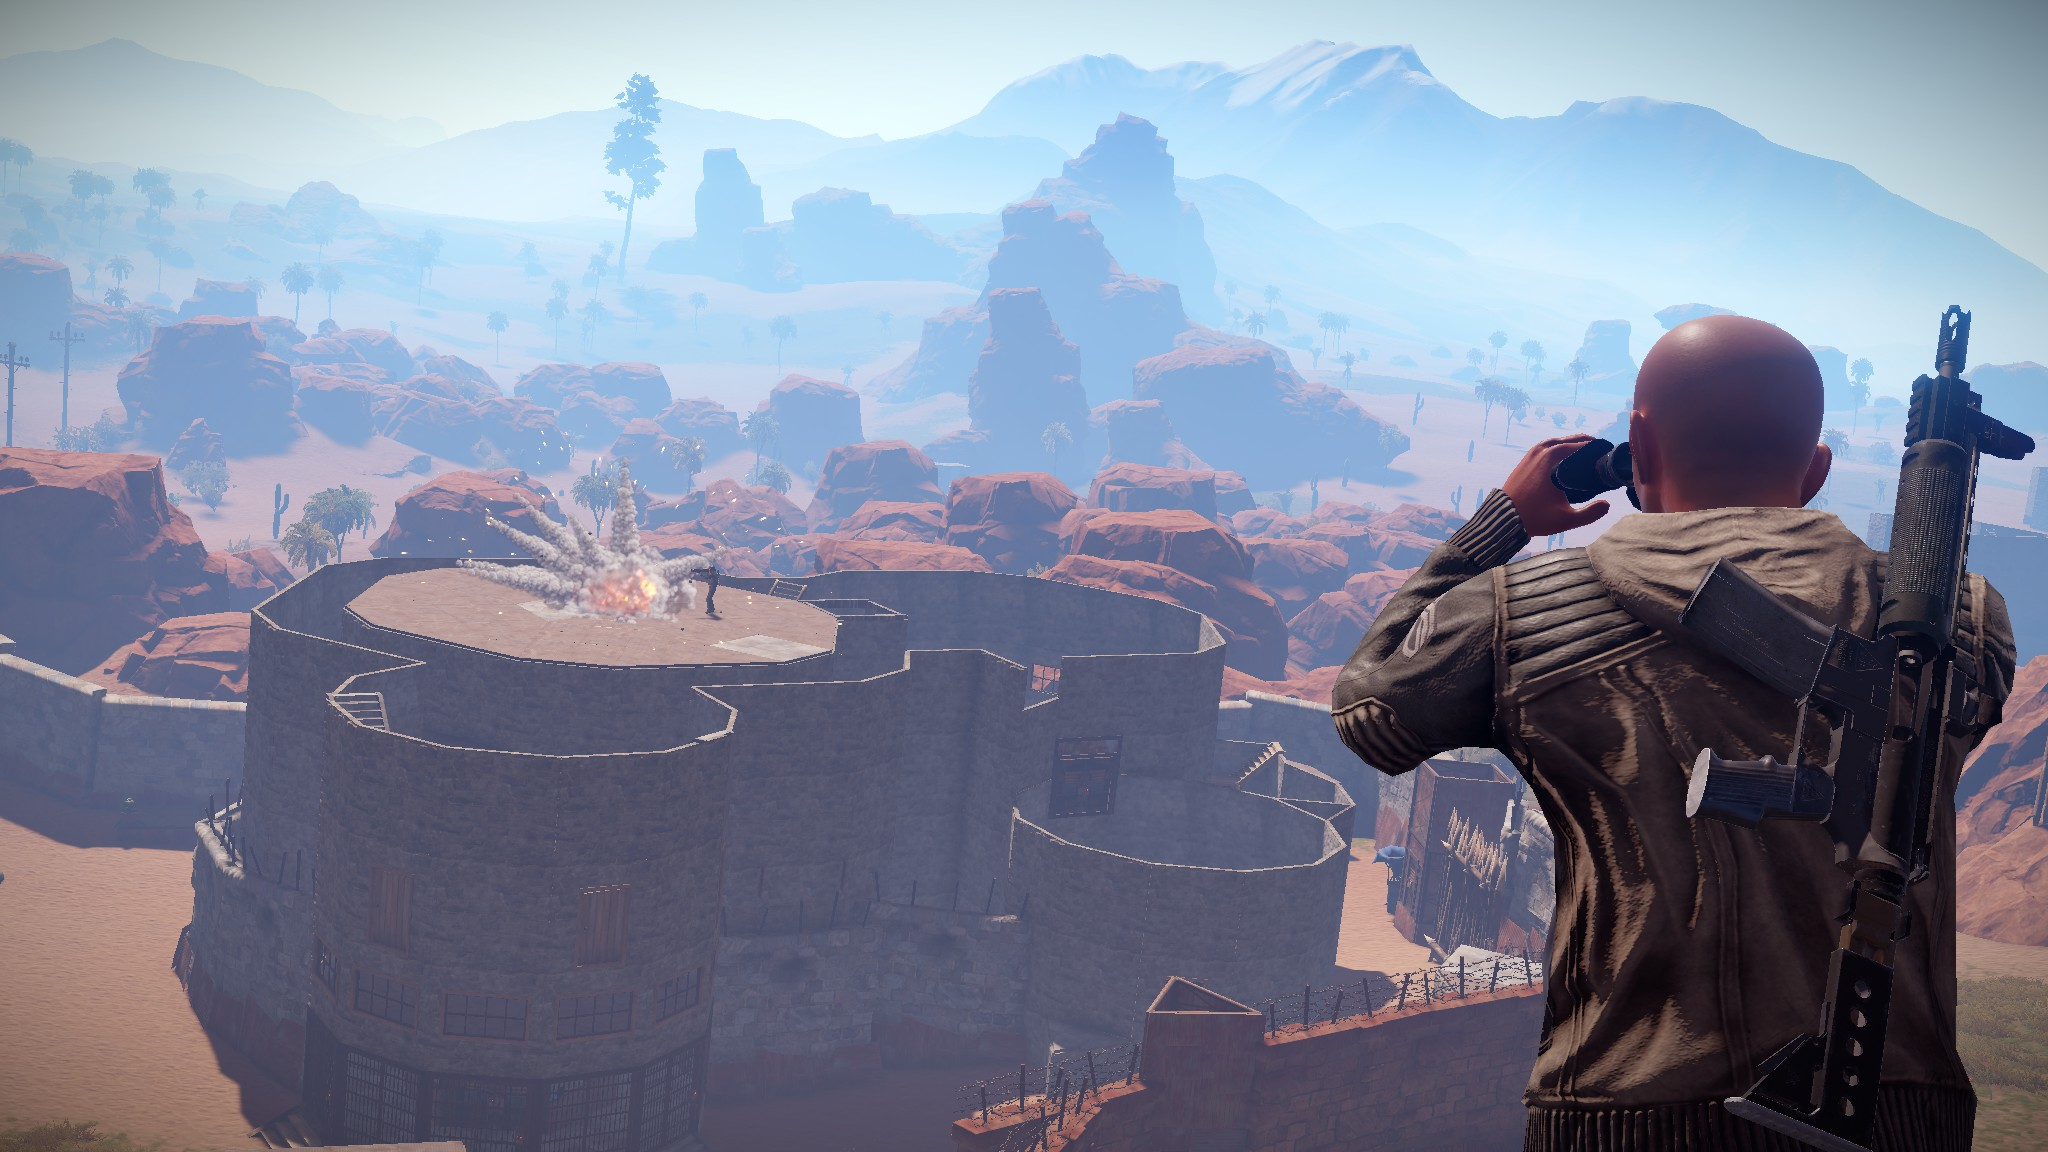 329,970 copies of Rust have been refunded on Steam, totaling